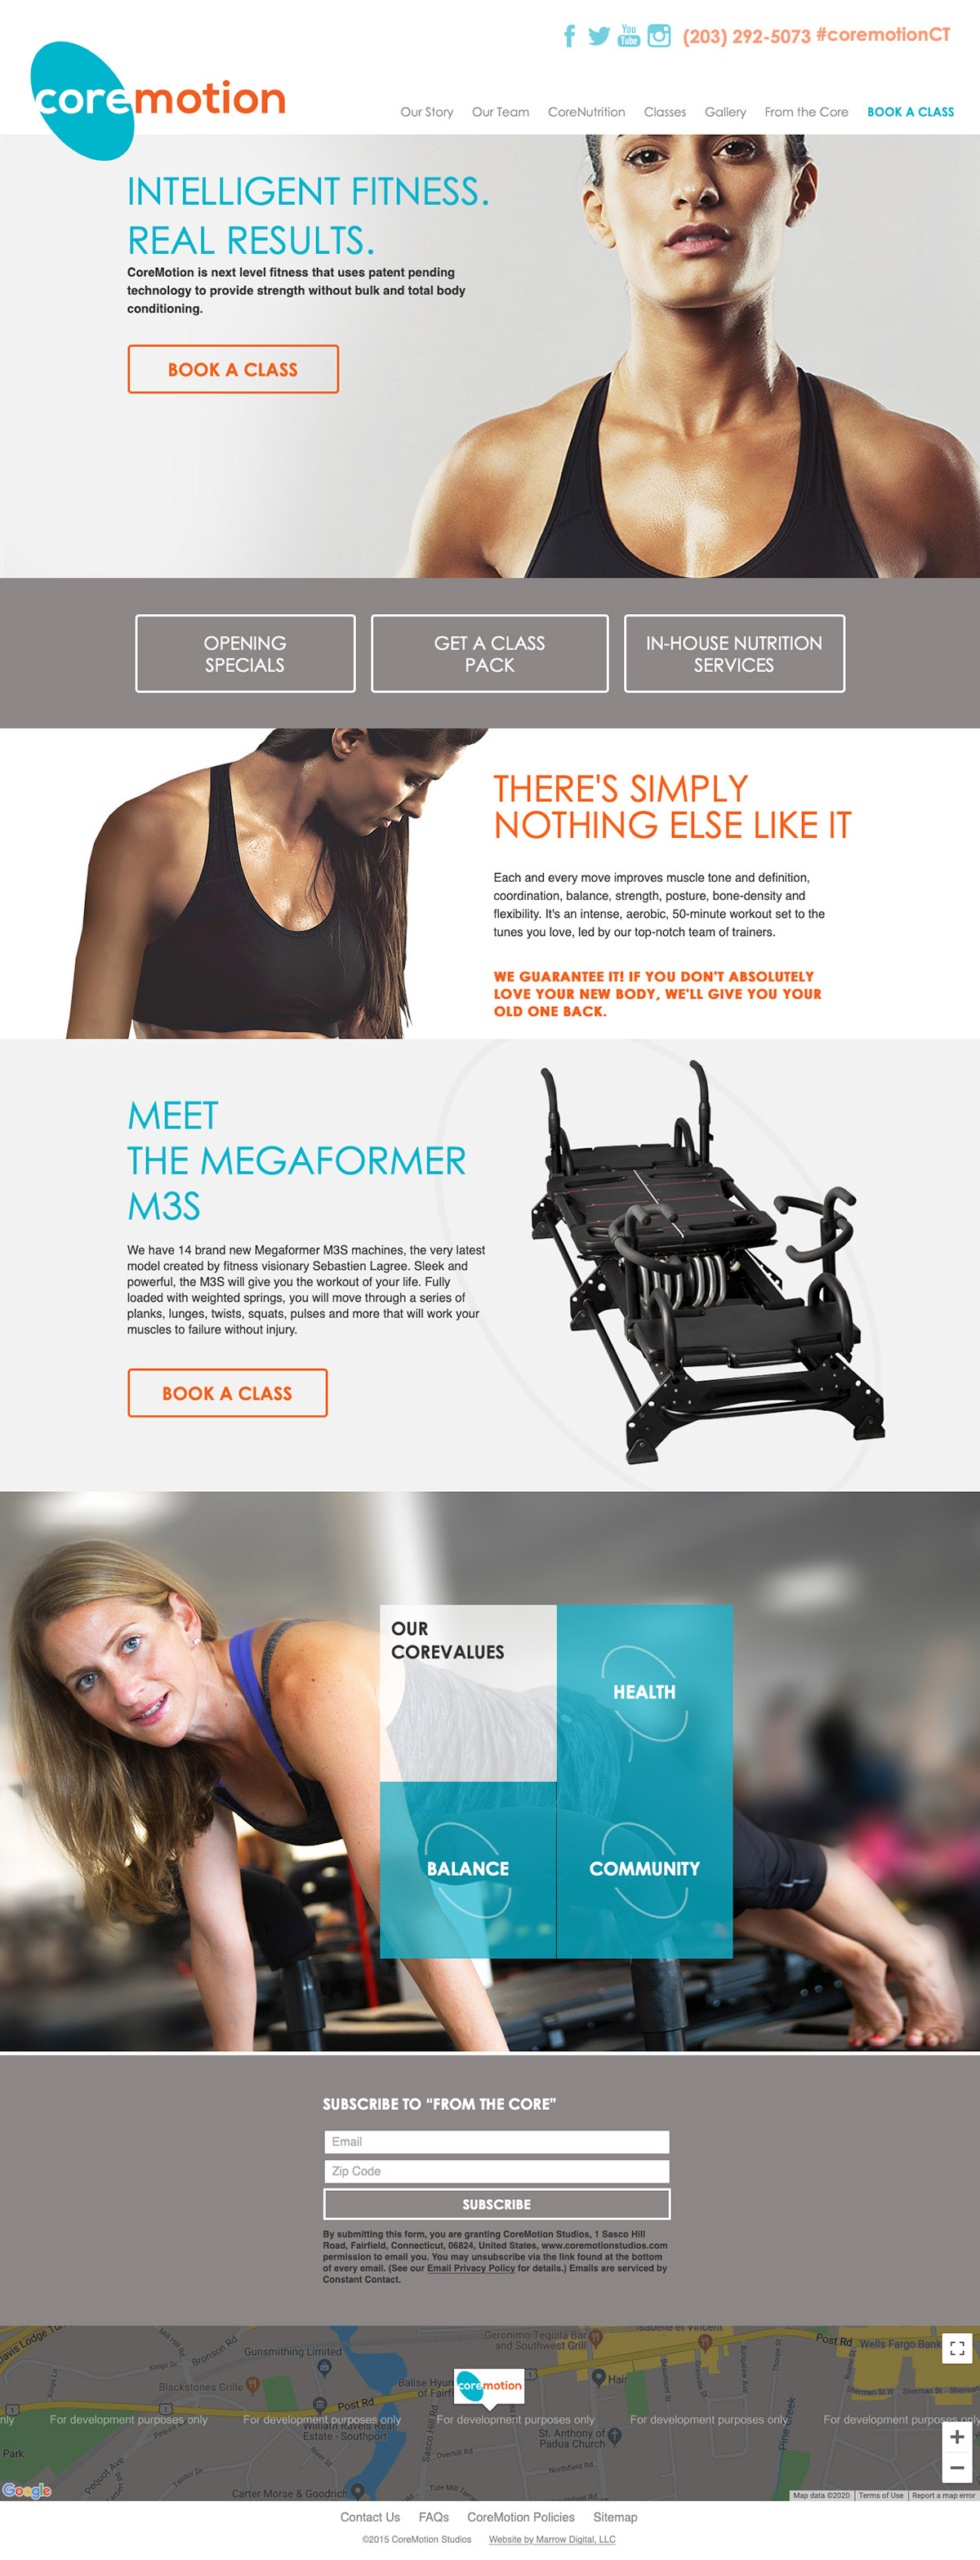 Core Motion Studios Home Page Layout